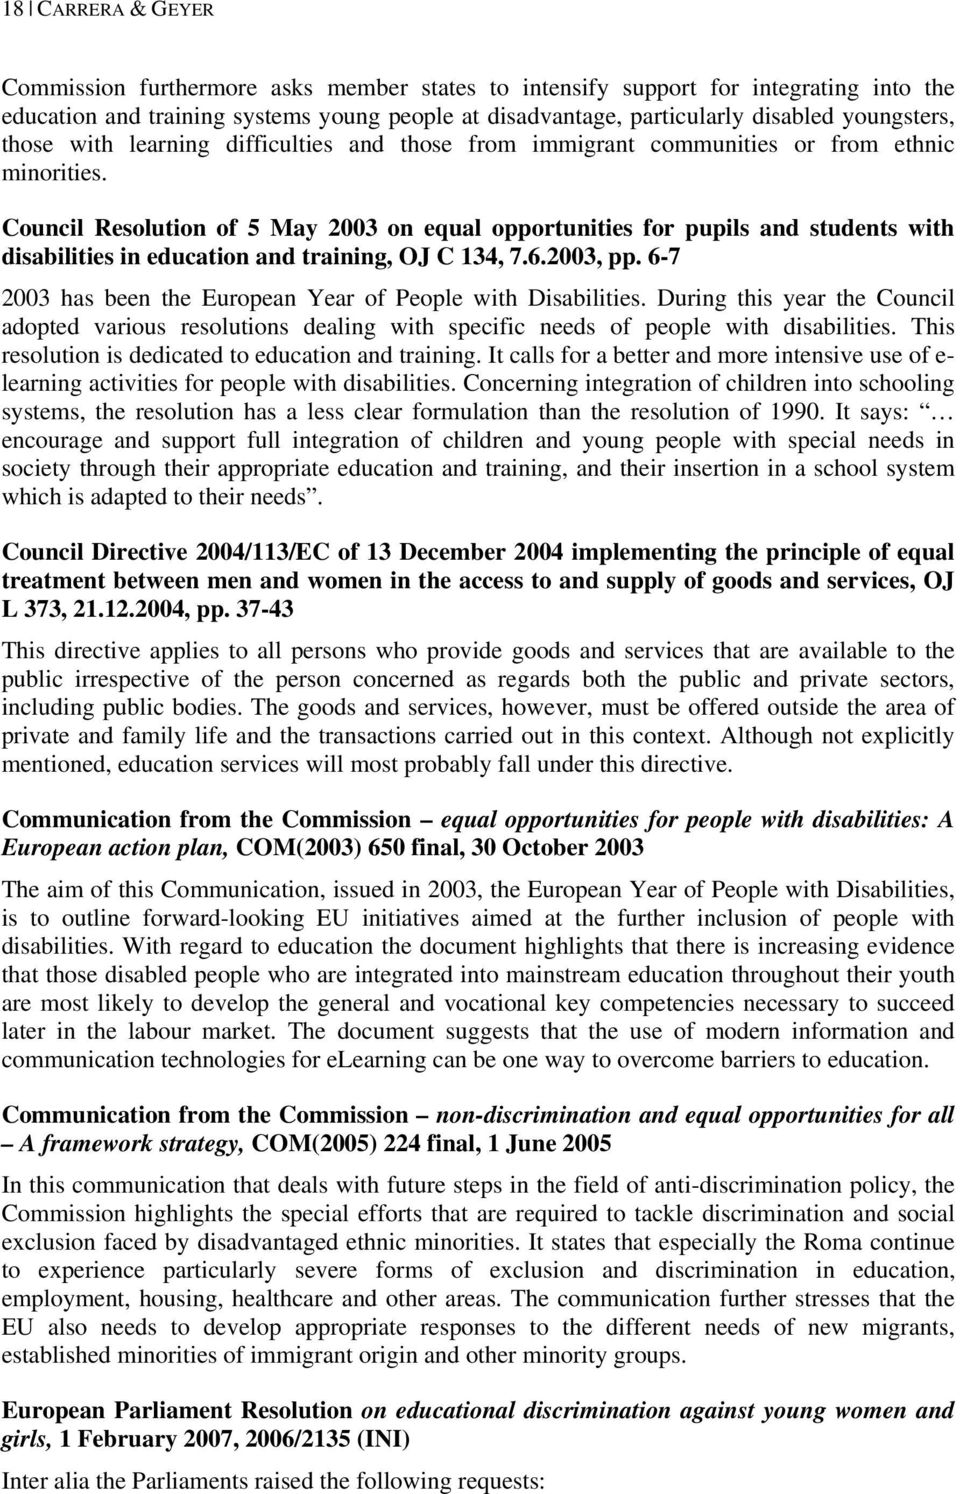 Council Resolution of 5 May 2003 on equal opportunities for pupils and students with disabilities in education and training, OJ C 134, 7.6.2003, pp.